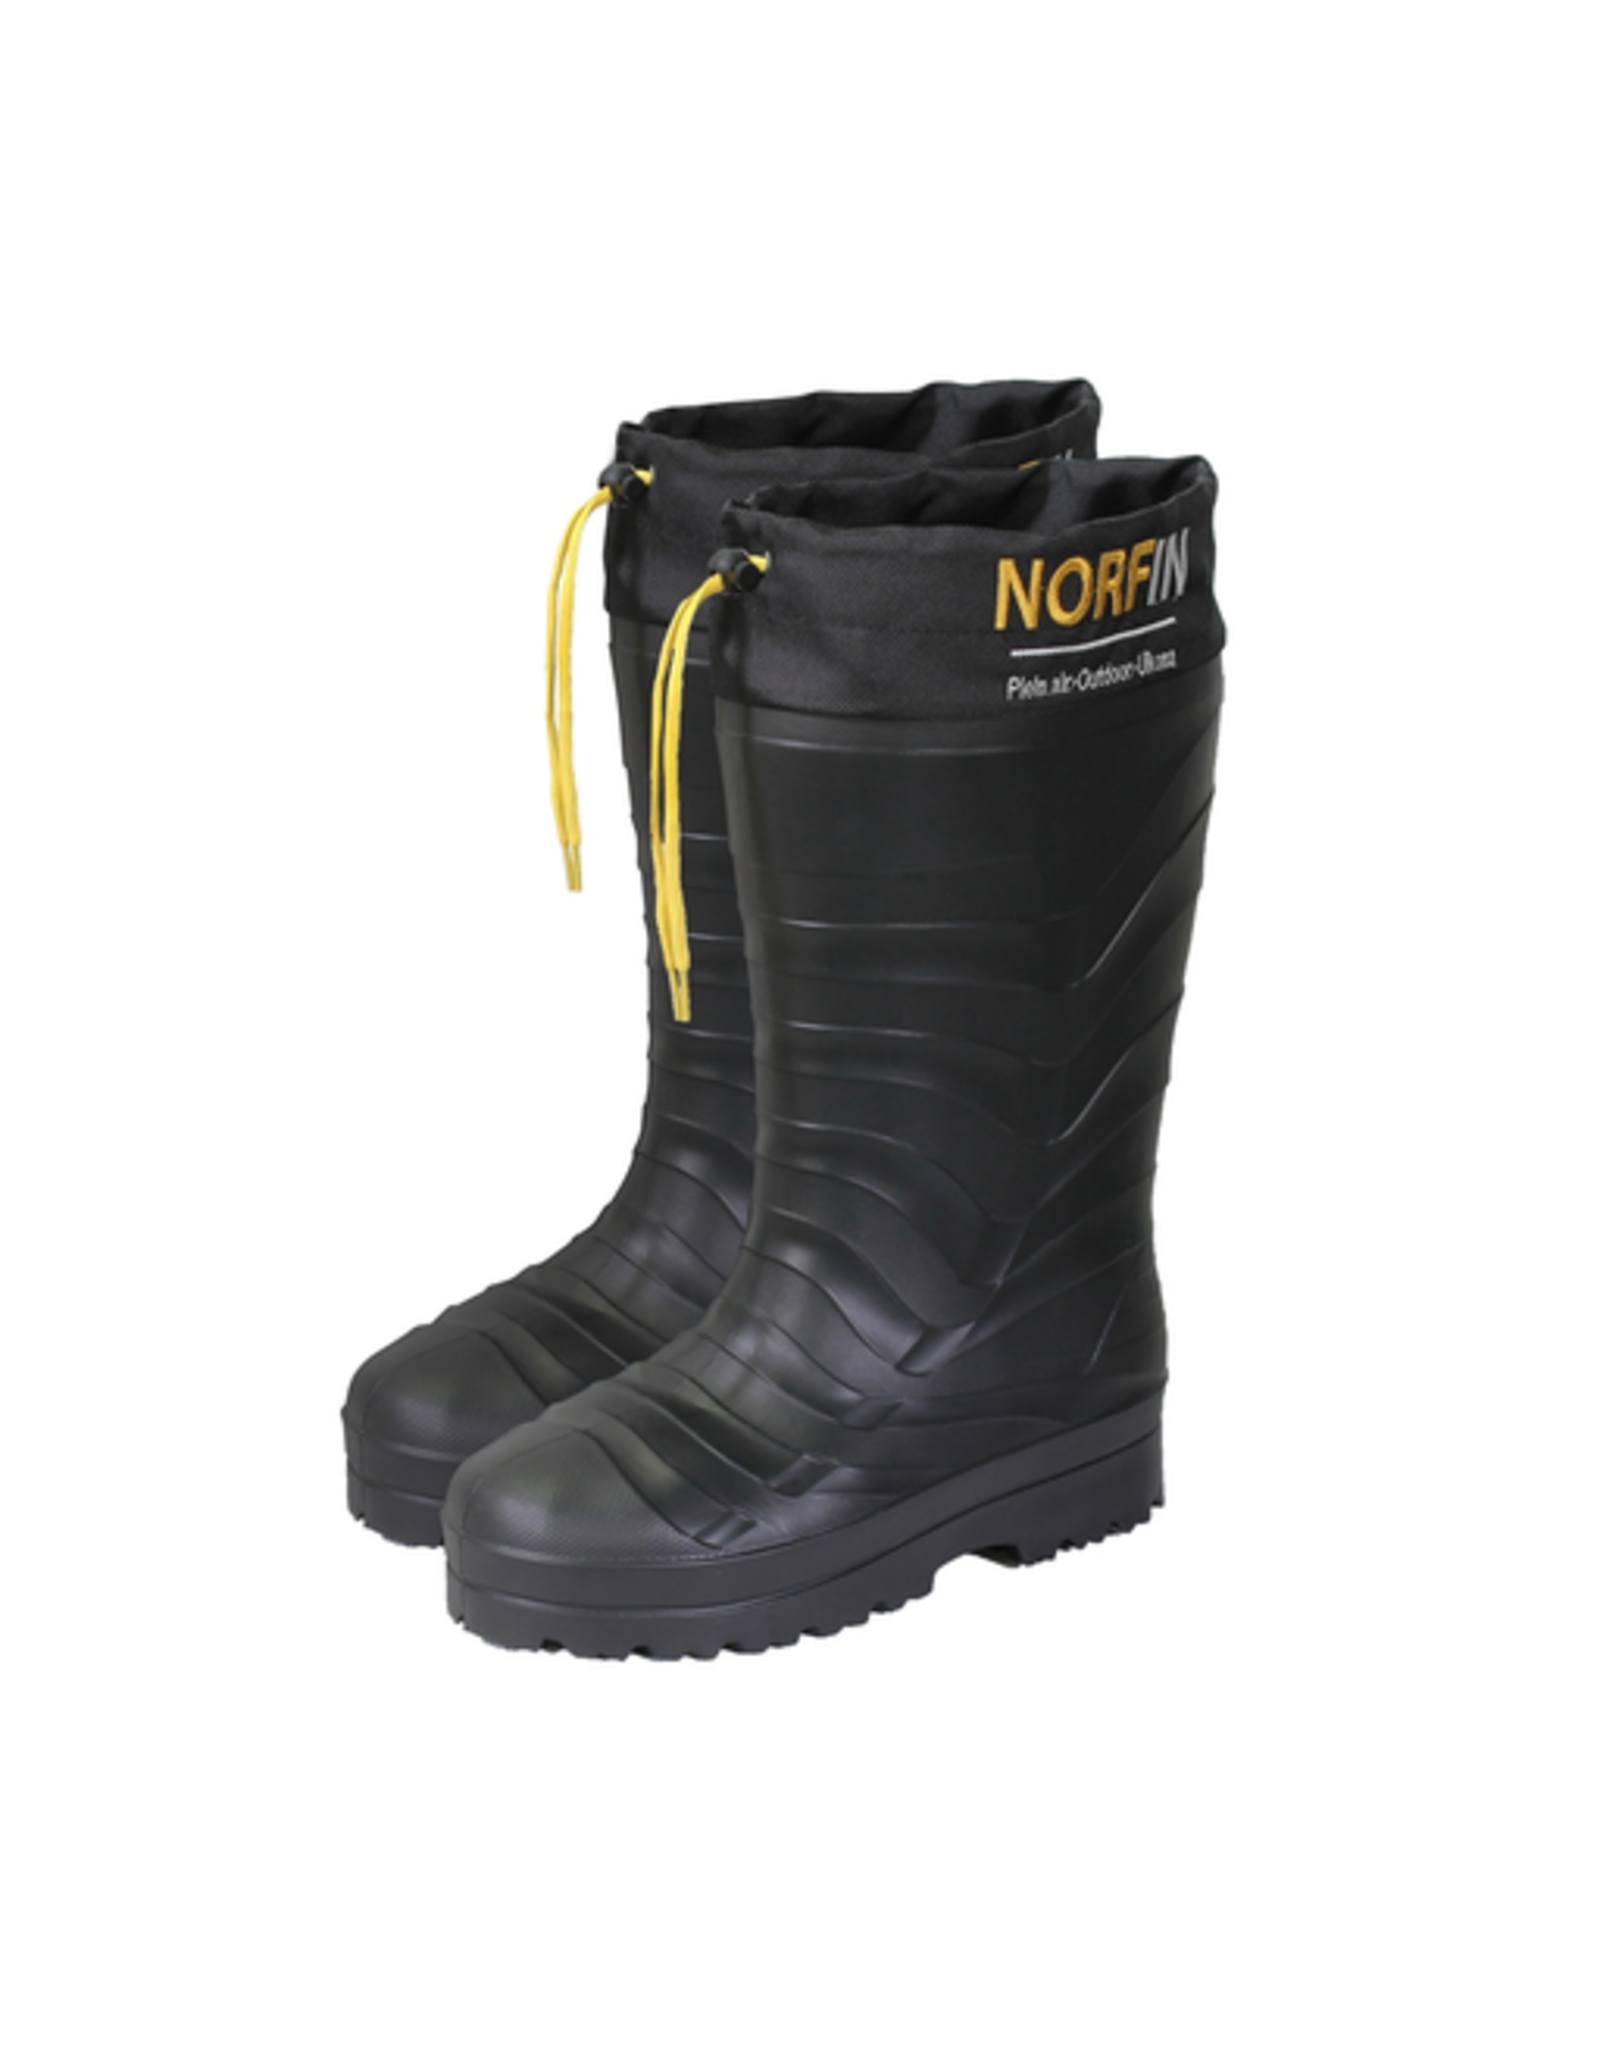 GKS Norfin Mens Insulated EVA  Boot